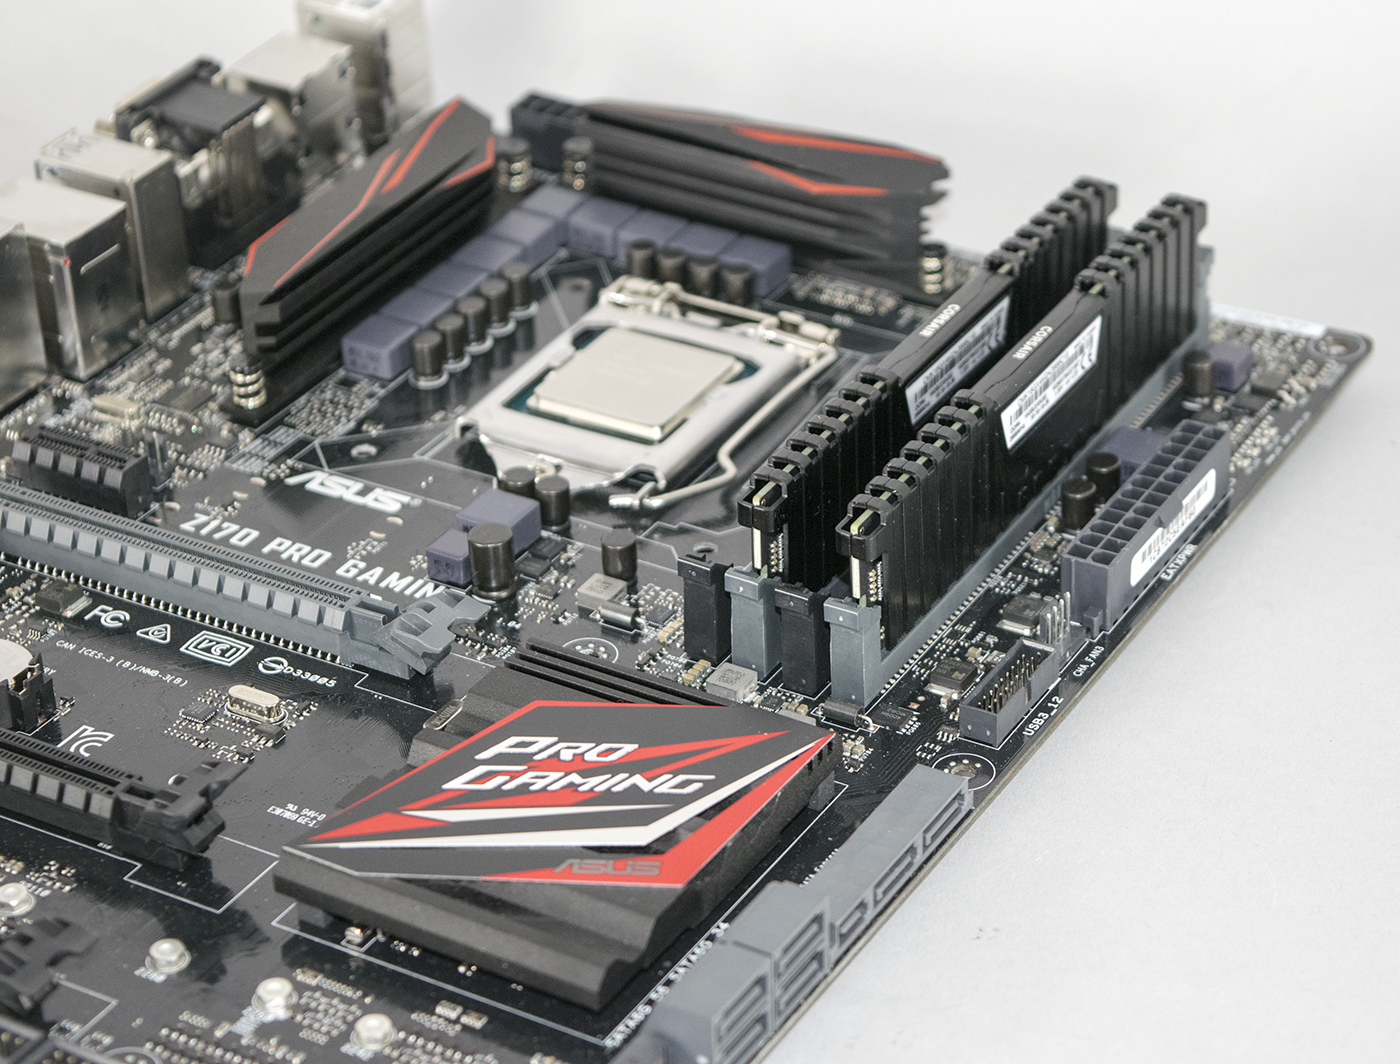 ASUS Z170 Pro Gaming Skylake Motherboard Review 57